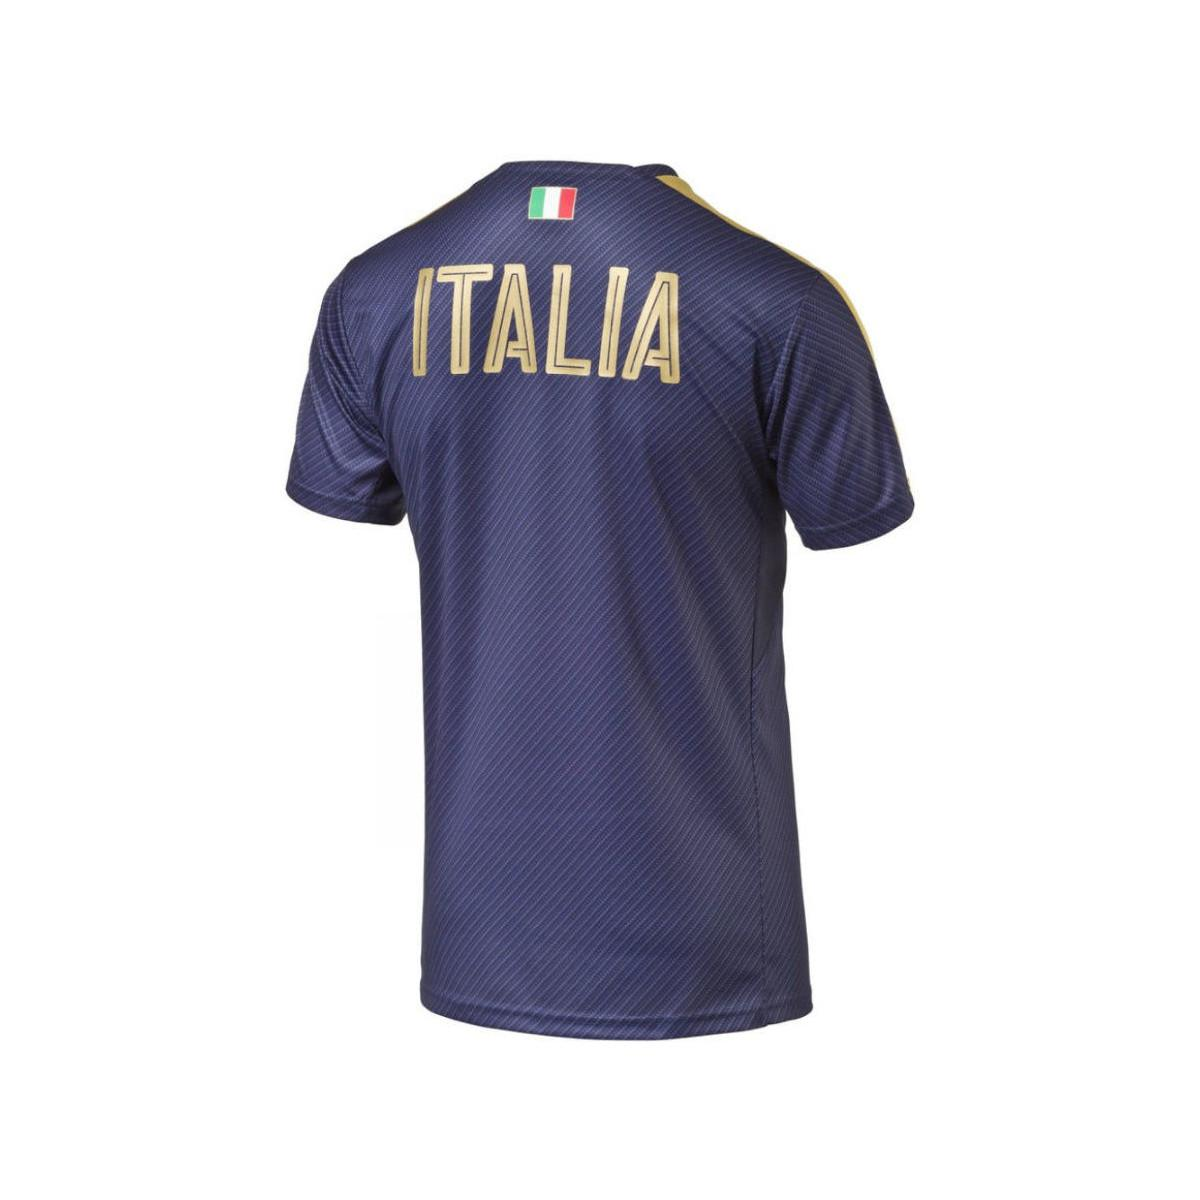 951058597 Puma Italy 2006 Tribute Stadium Jersey (peacot)) - Kids Women s In ...